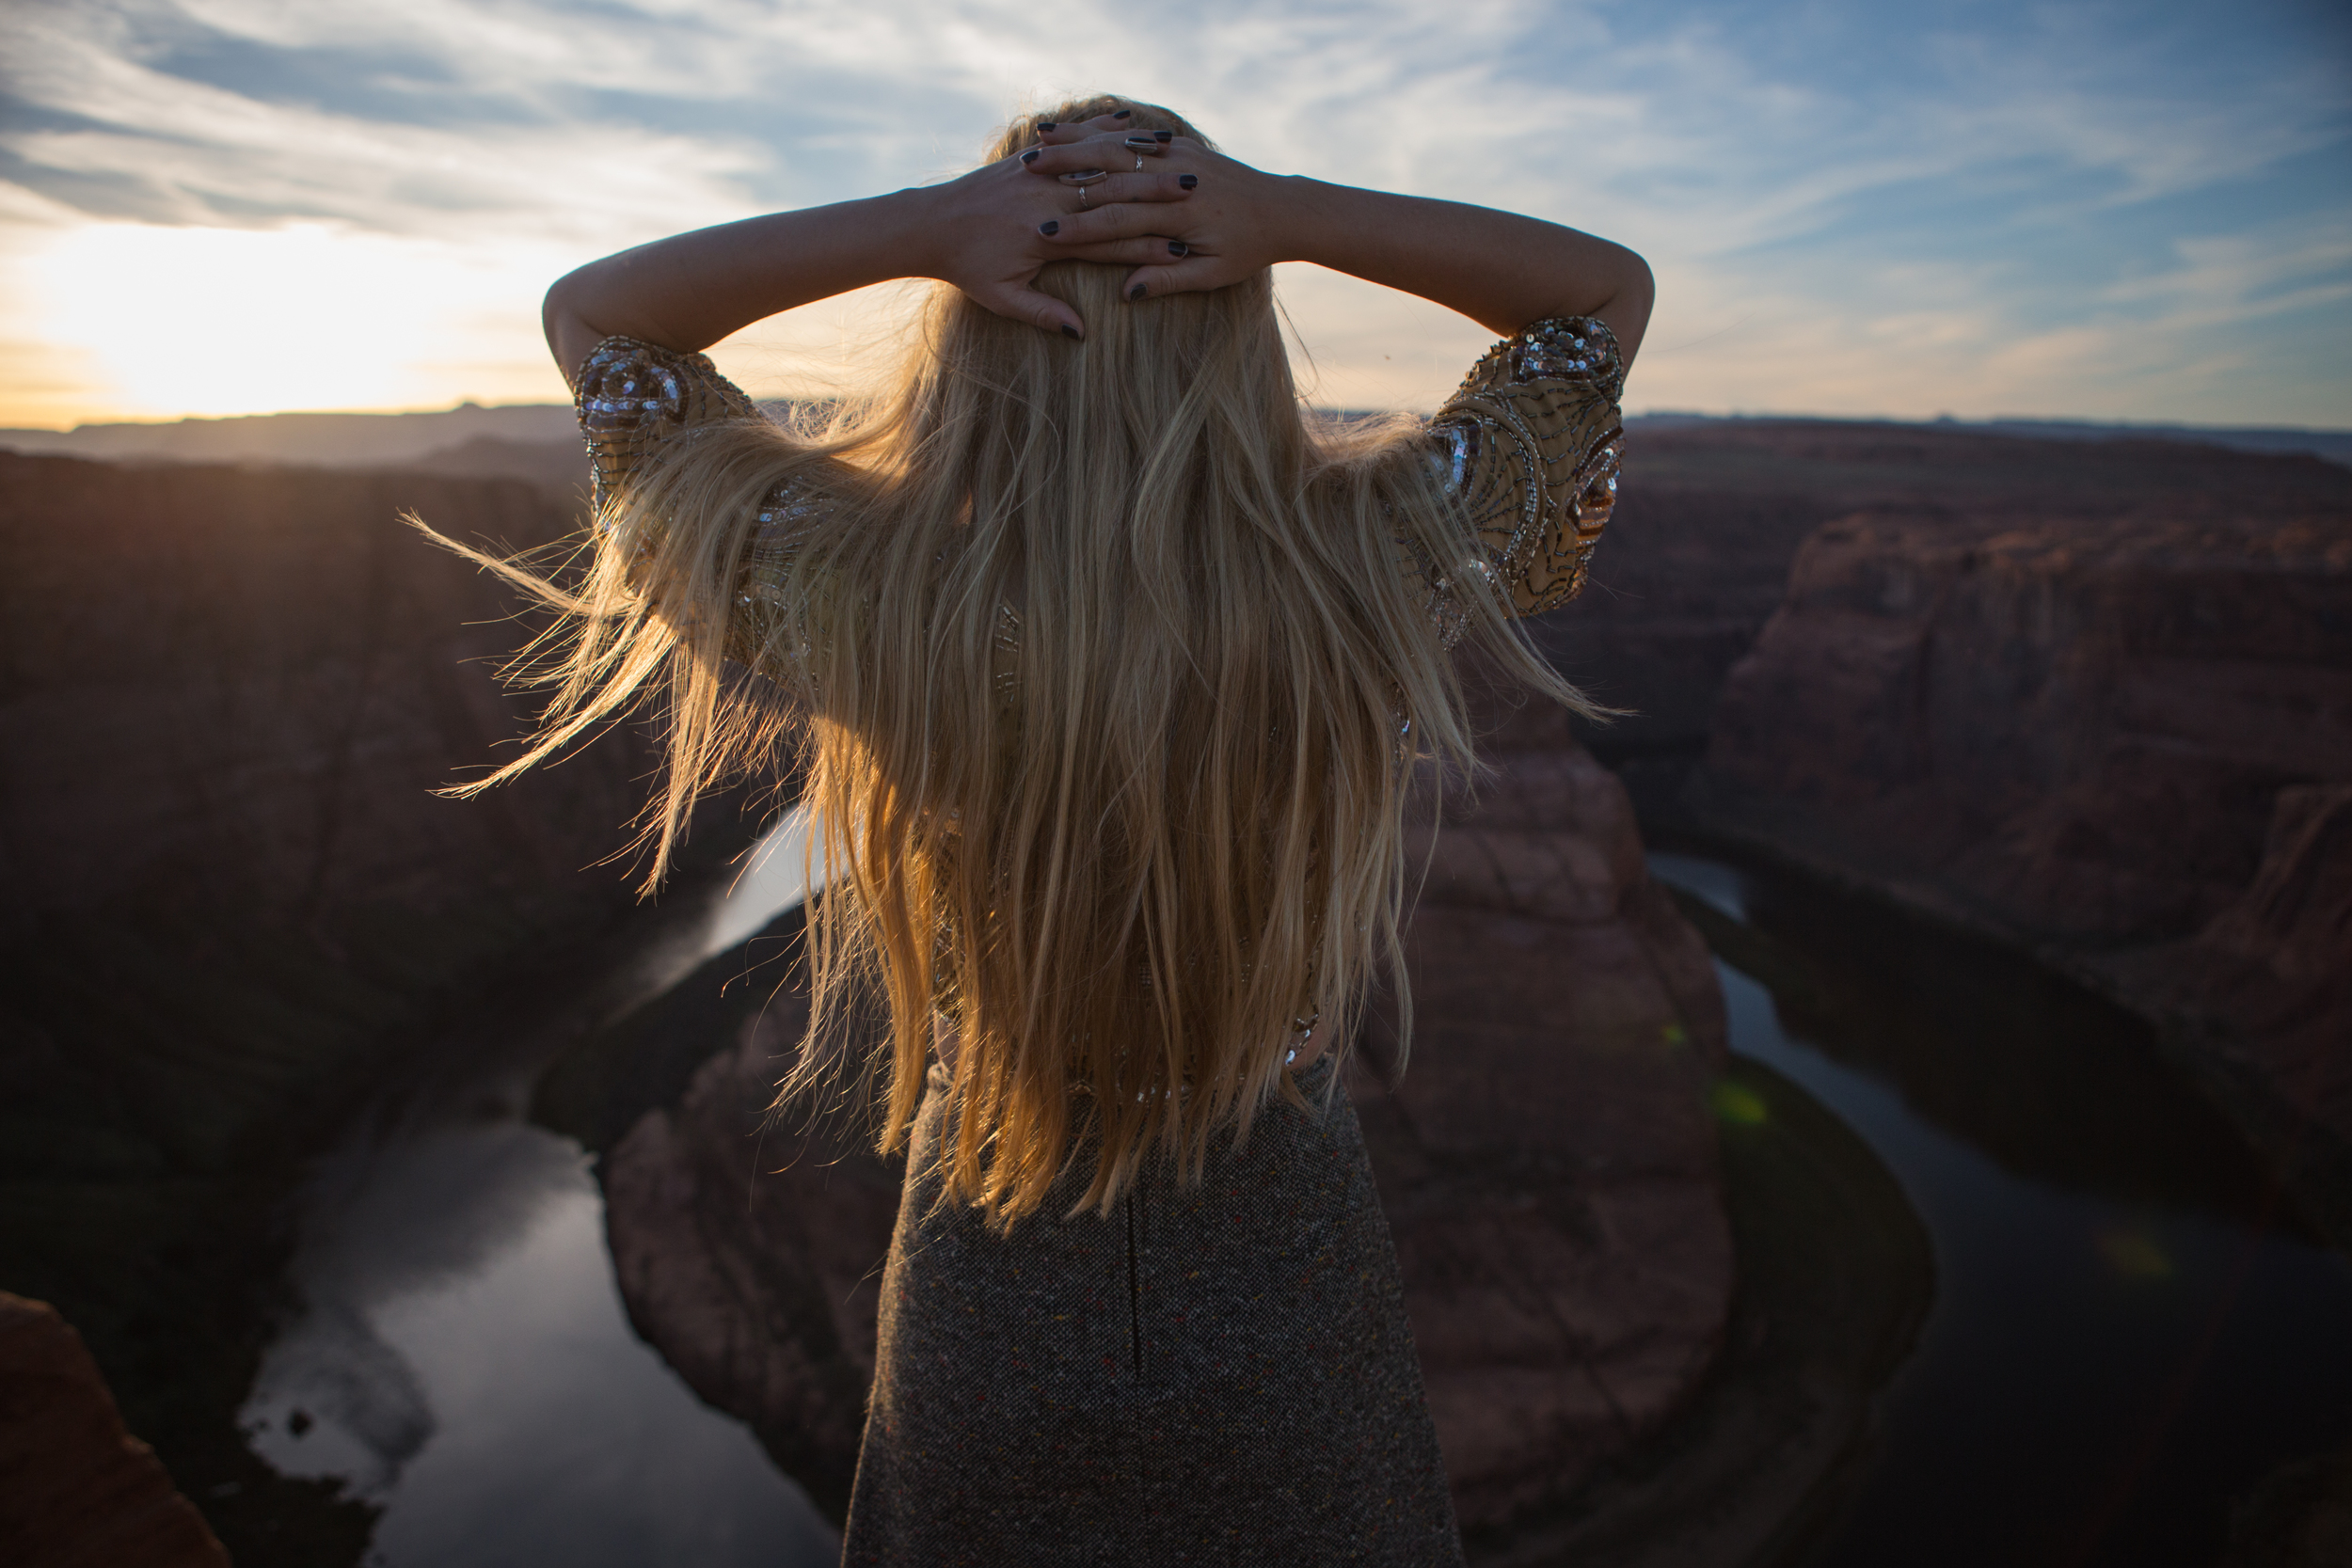 AstroBandit_JordanRose_HorseshoeBend_Cheers_Sunset_Arizona_Wanderlust_Travel_2.jpg